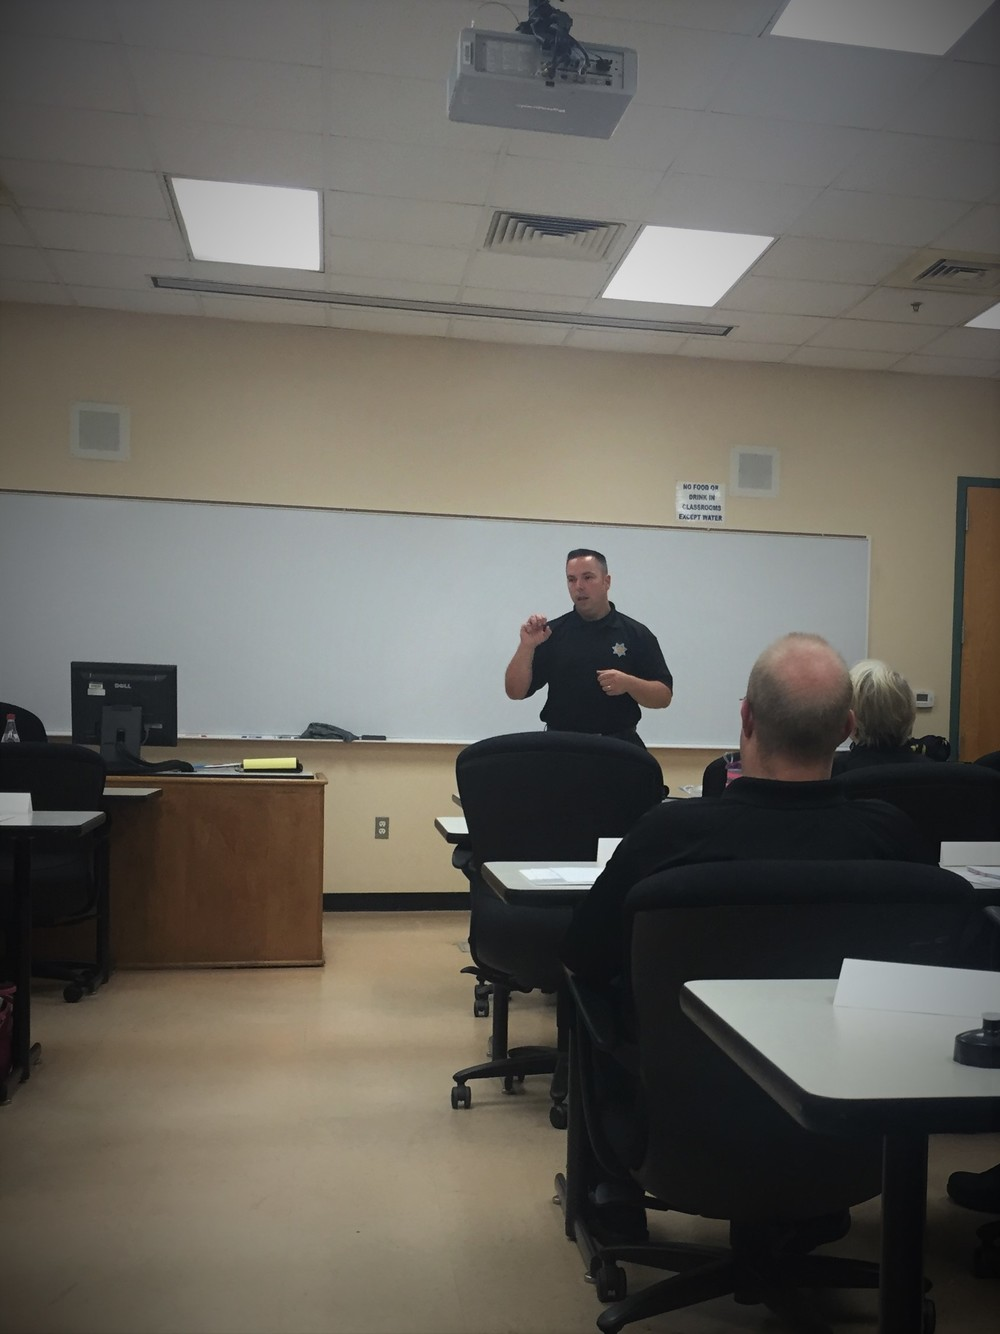 Officer J. Crespan with Santa Rosa Police Department teaching a class on law enforcement culture.